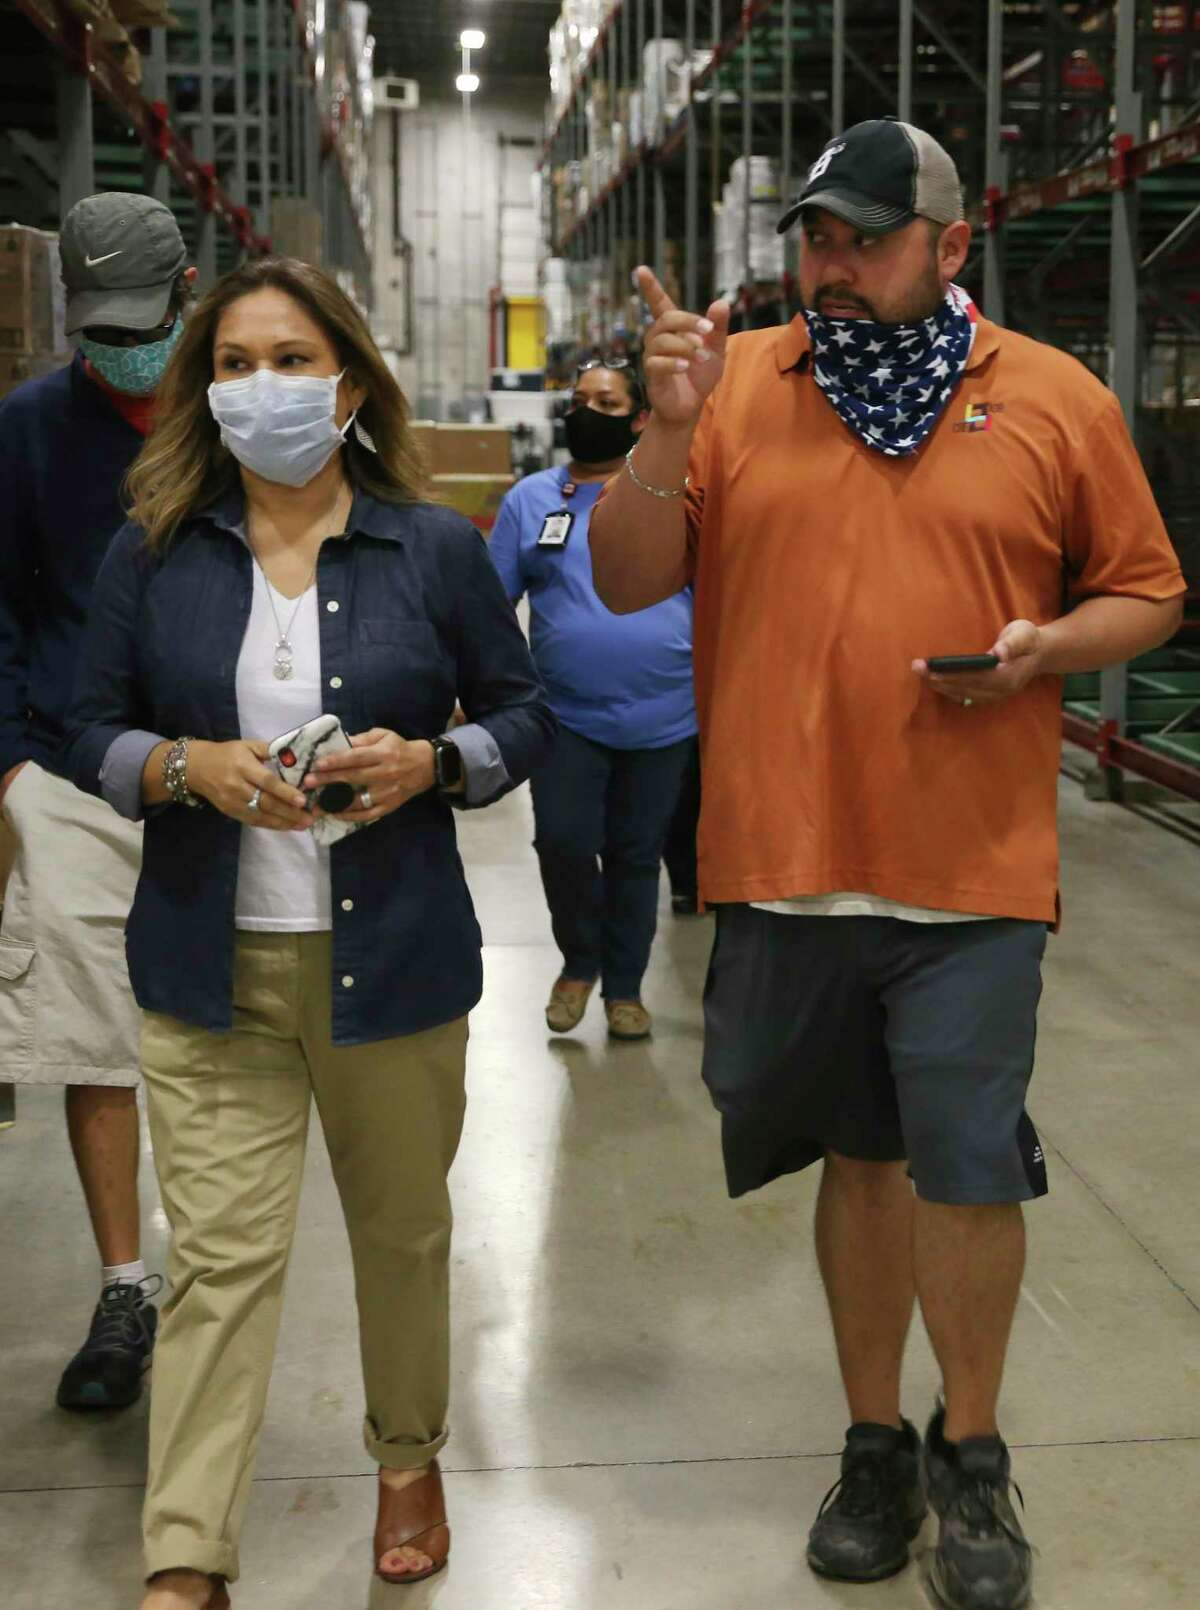 CRE8AD8 owner Gregorio Palomino walks out of the San Antonio Food Bank after five pallets of food boxes were delivered on Thursday, May 28, 2020.